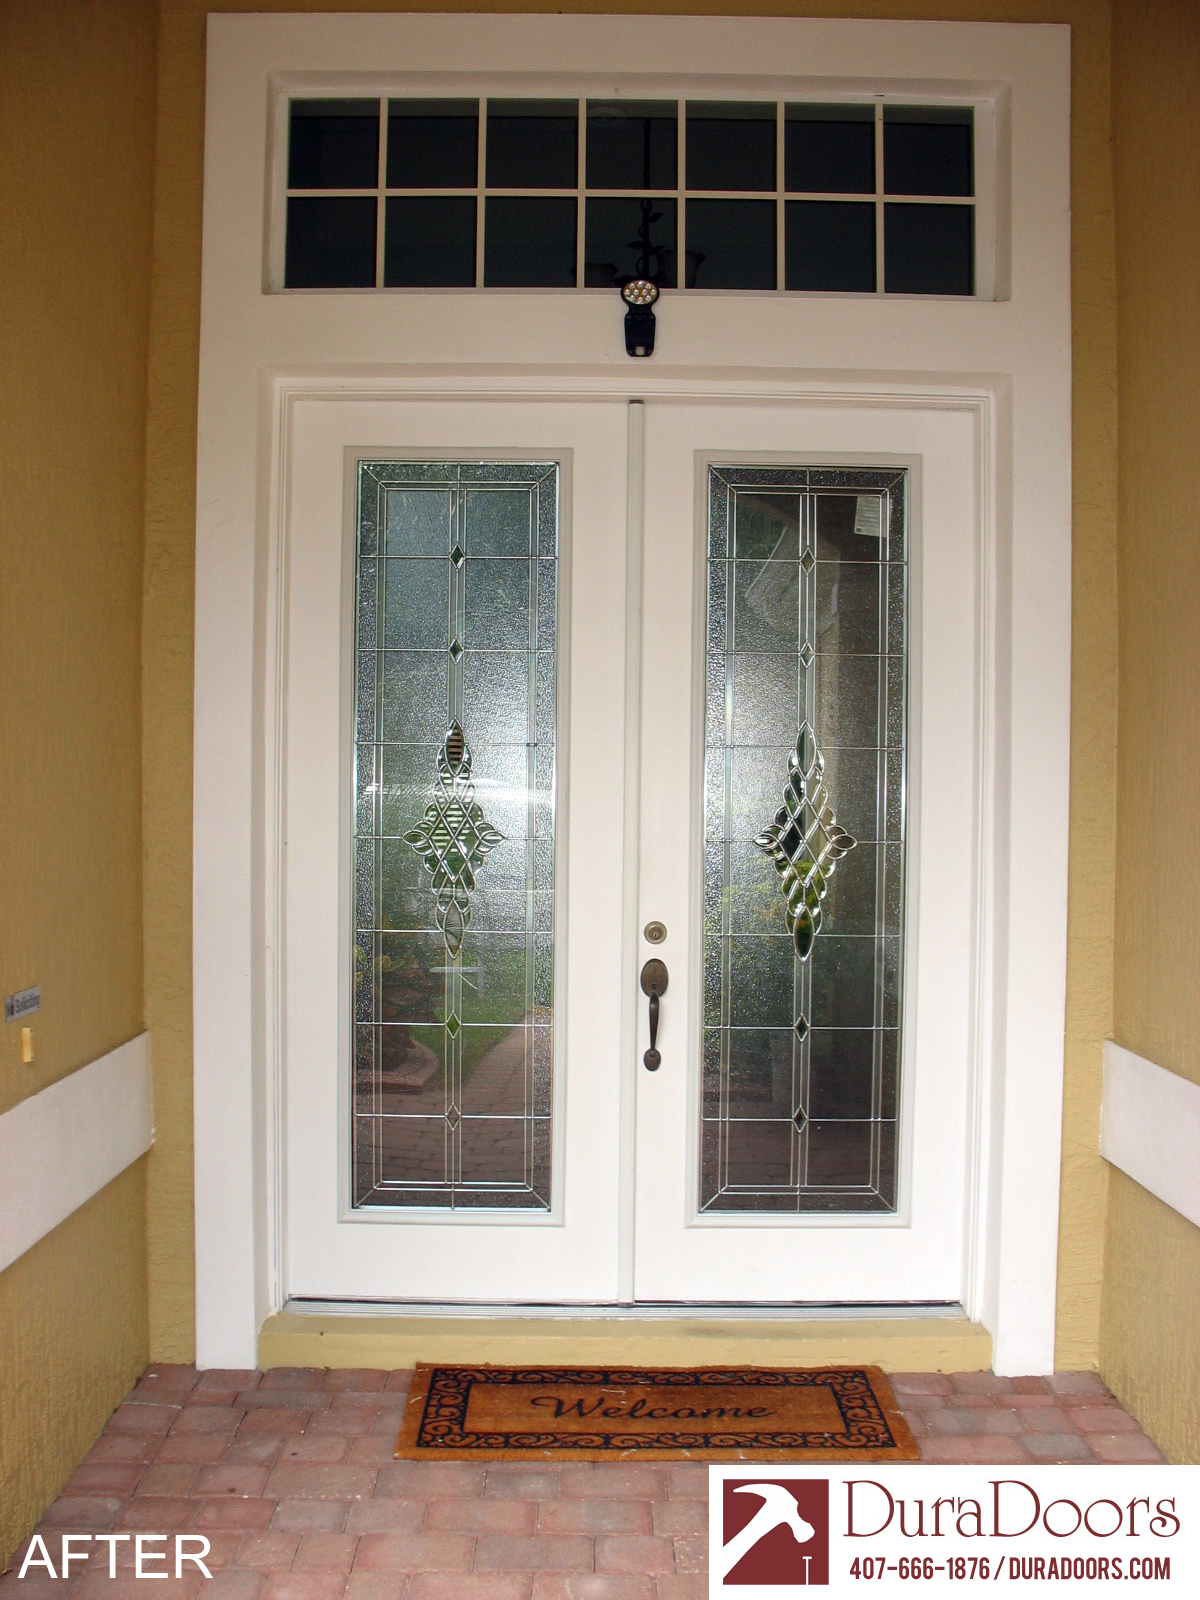 Odl grace decorative glass duradoors for Decorative glass for entry doors